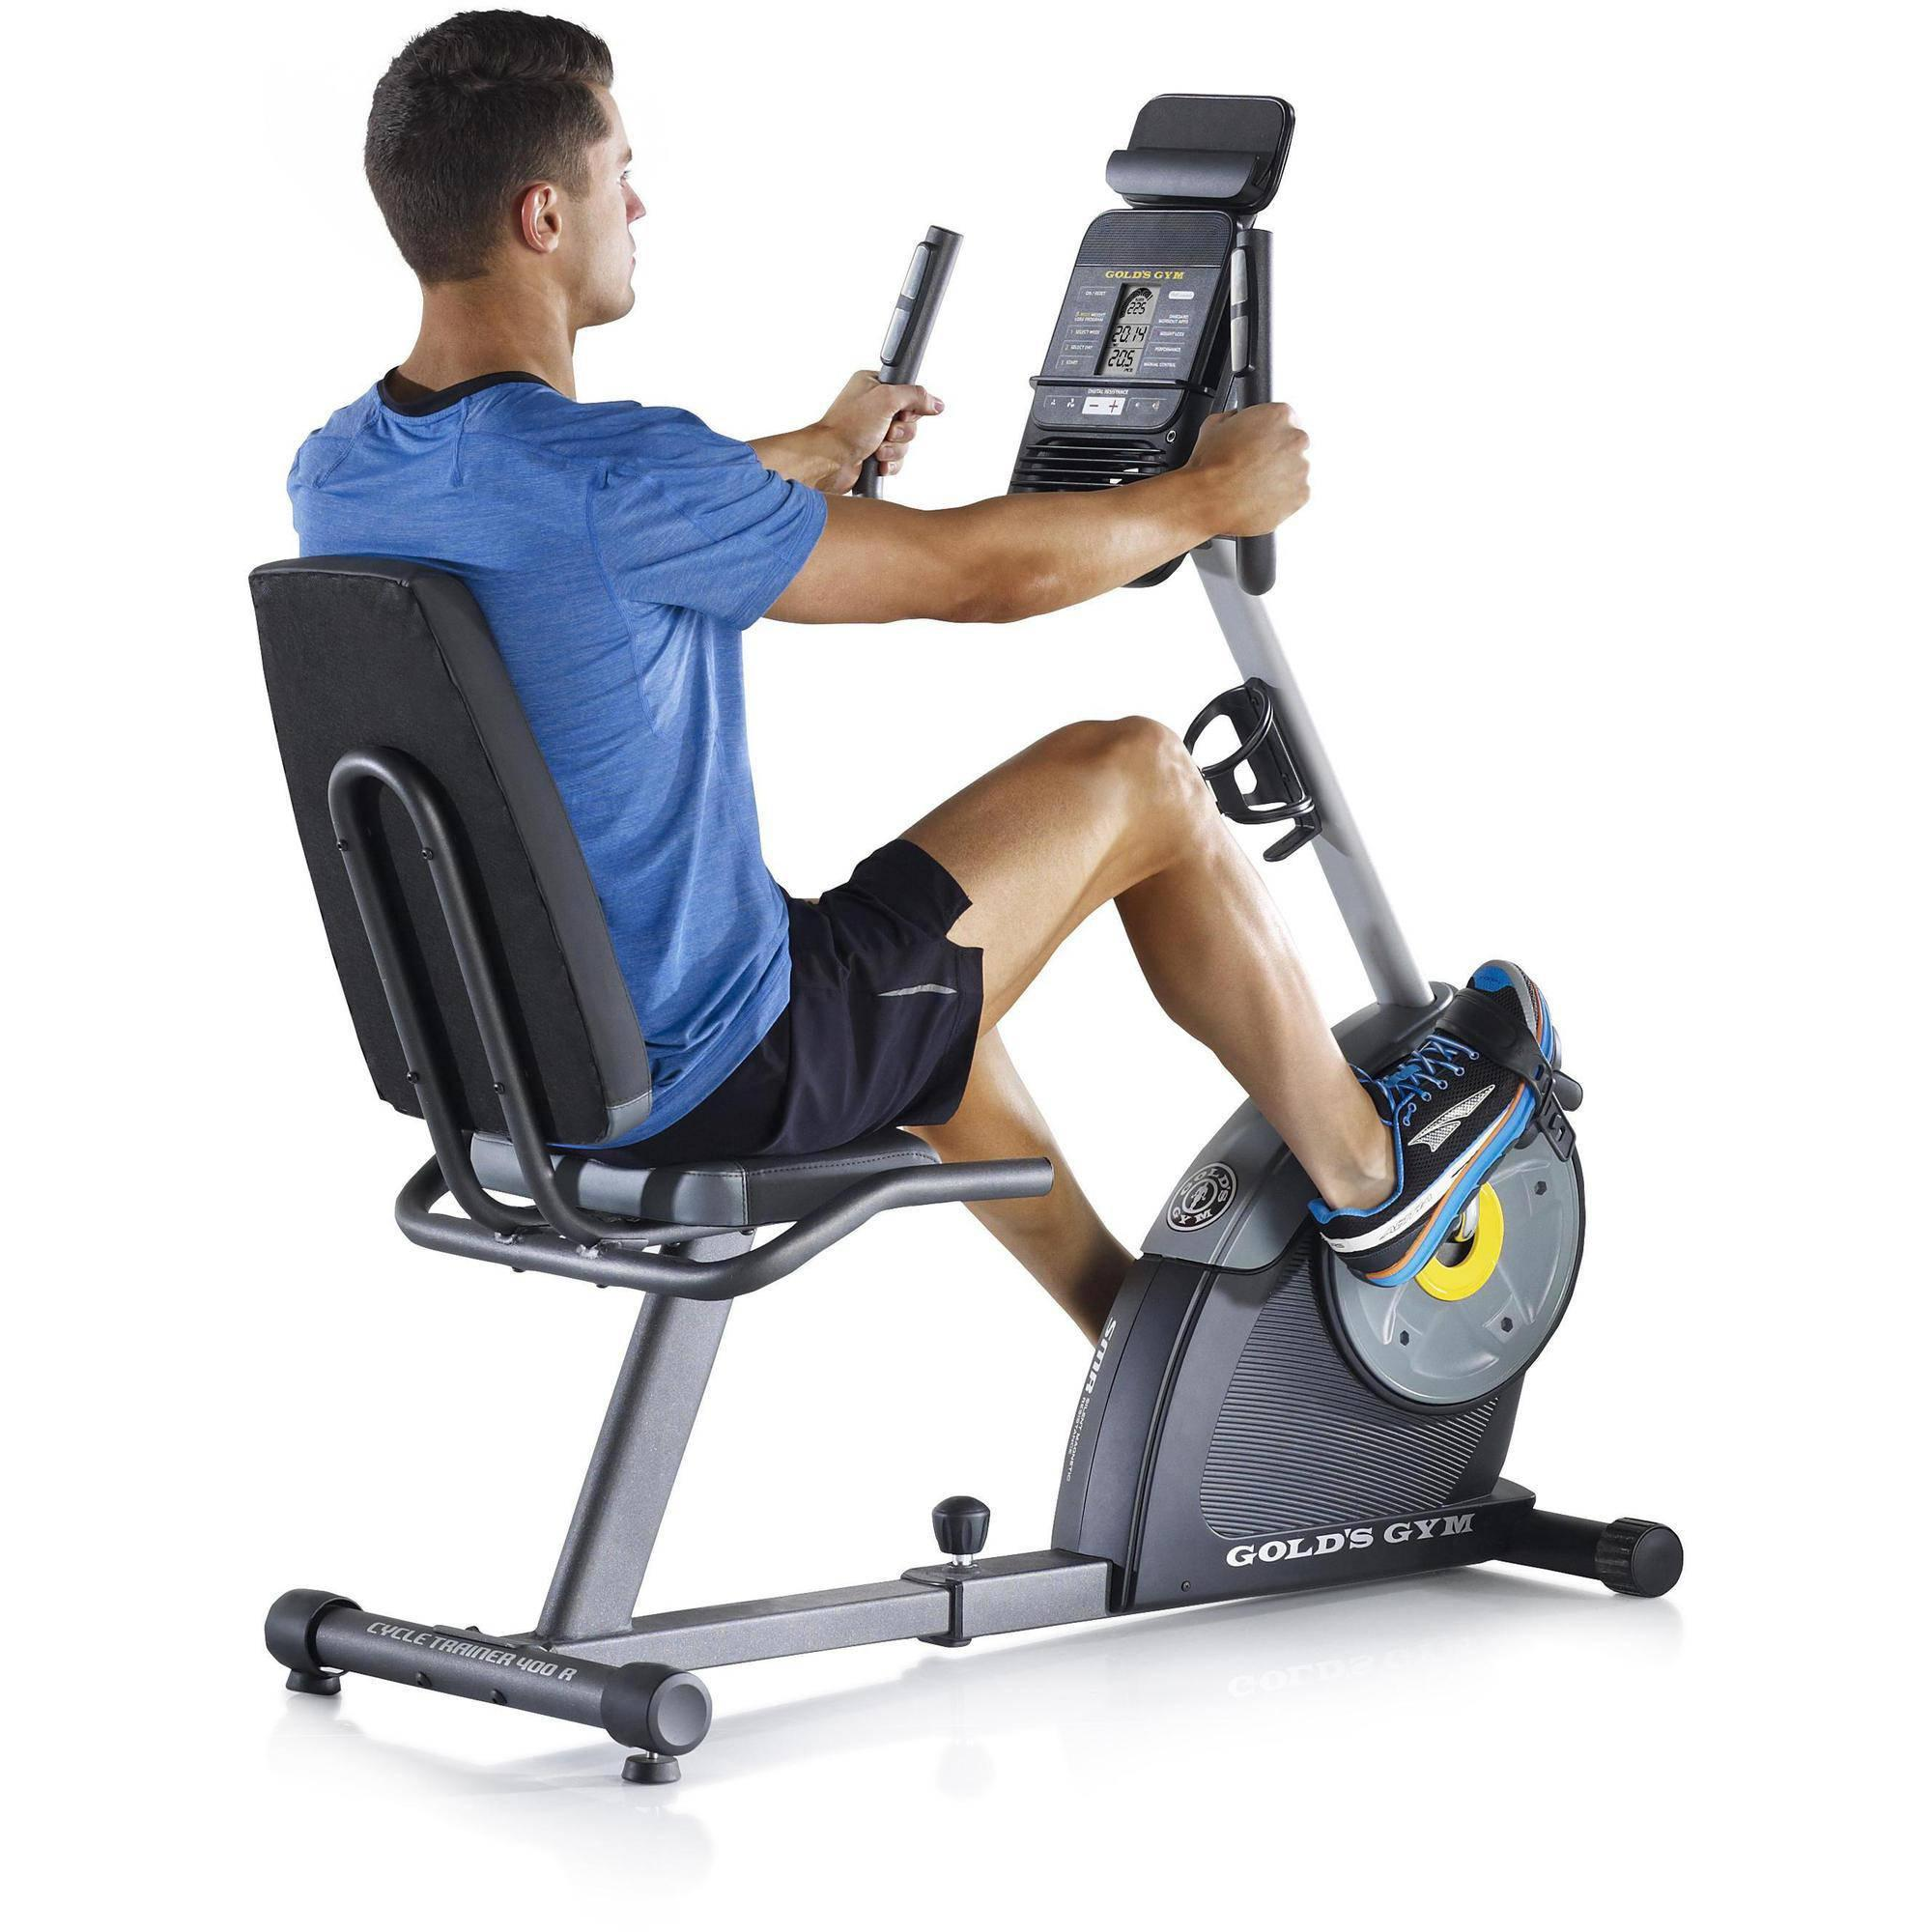 Golds Gym Treadmill Not Working: Gold's Gym Cycle Trainer 400R Exercise Bike